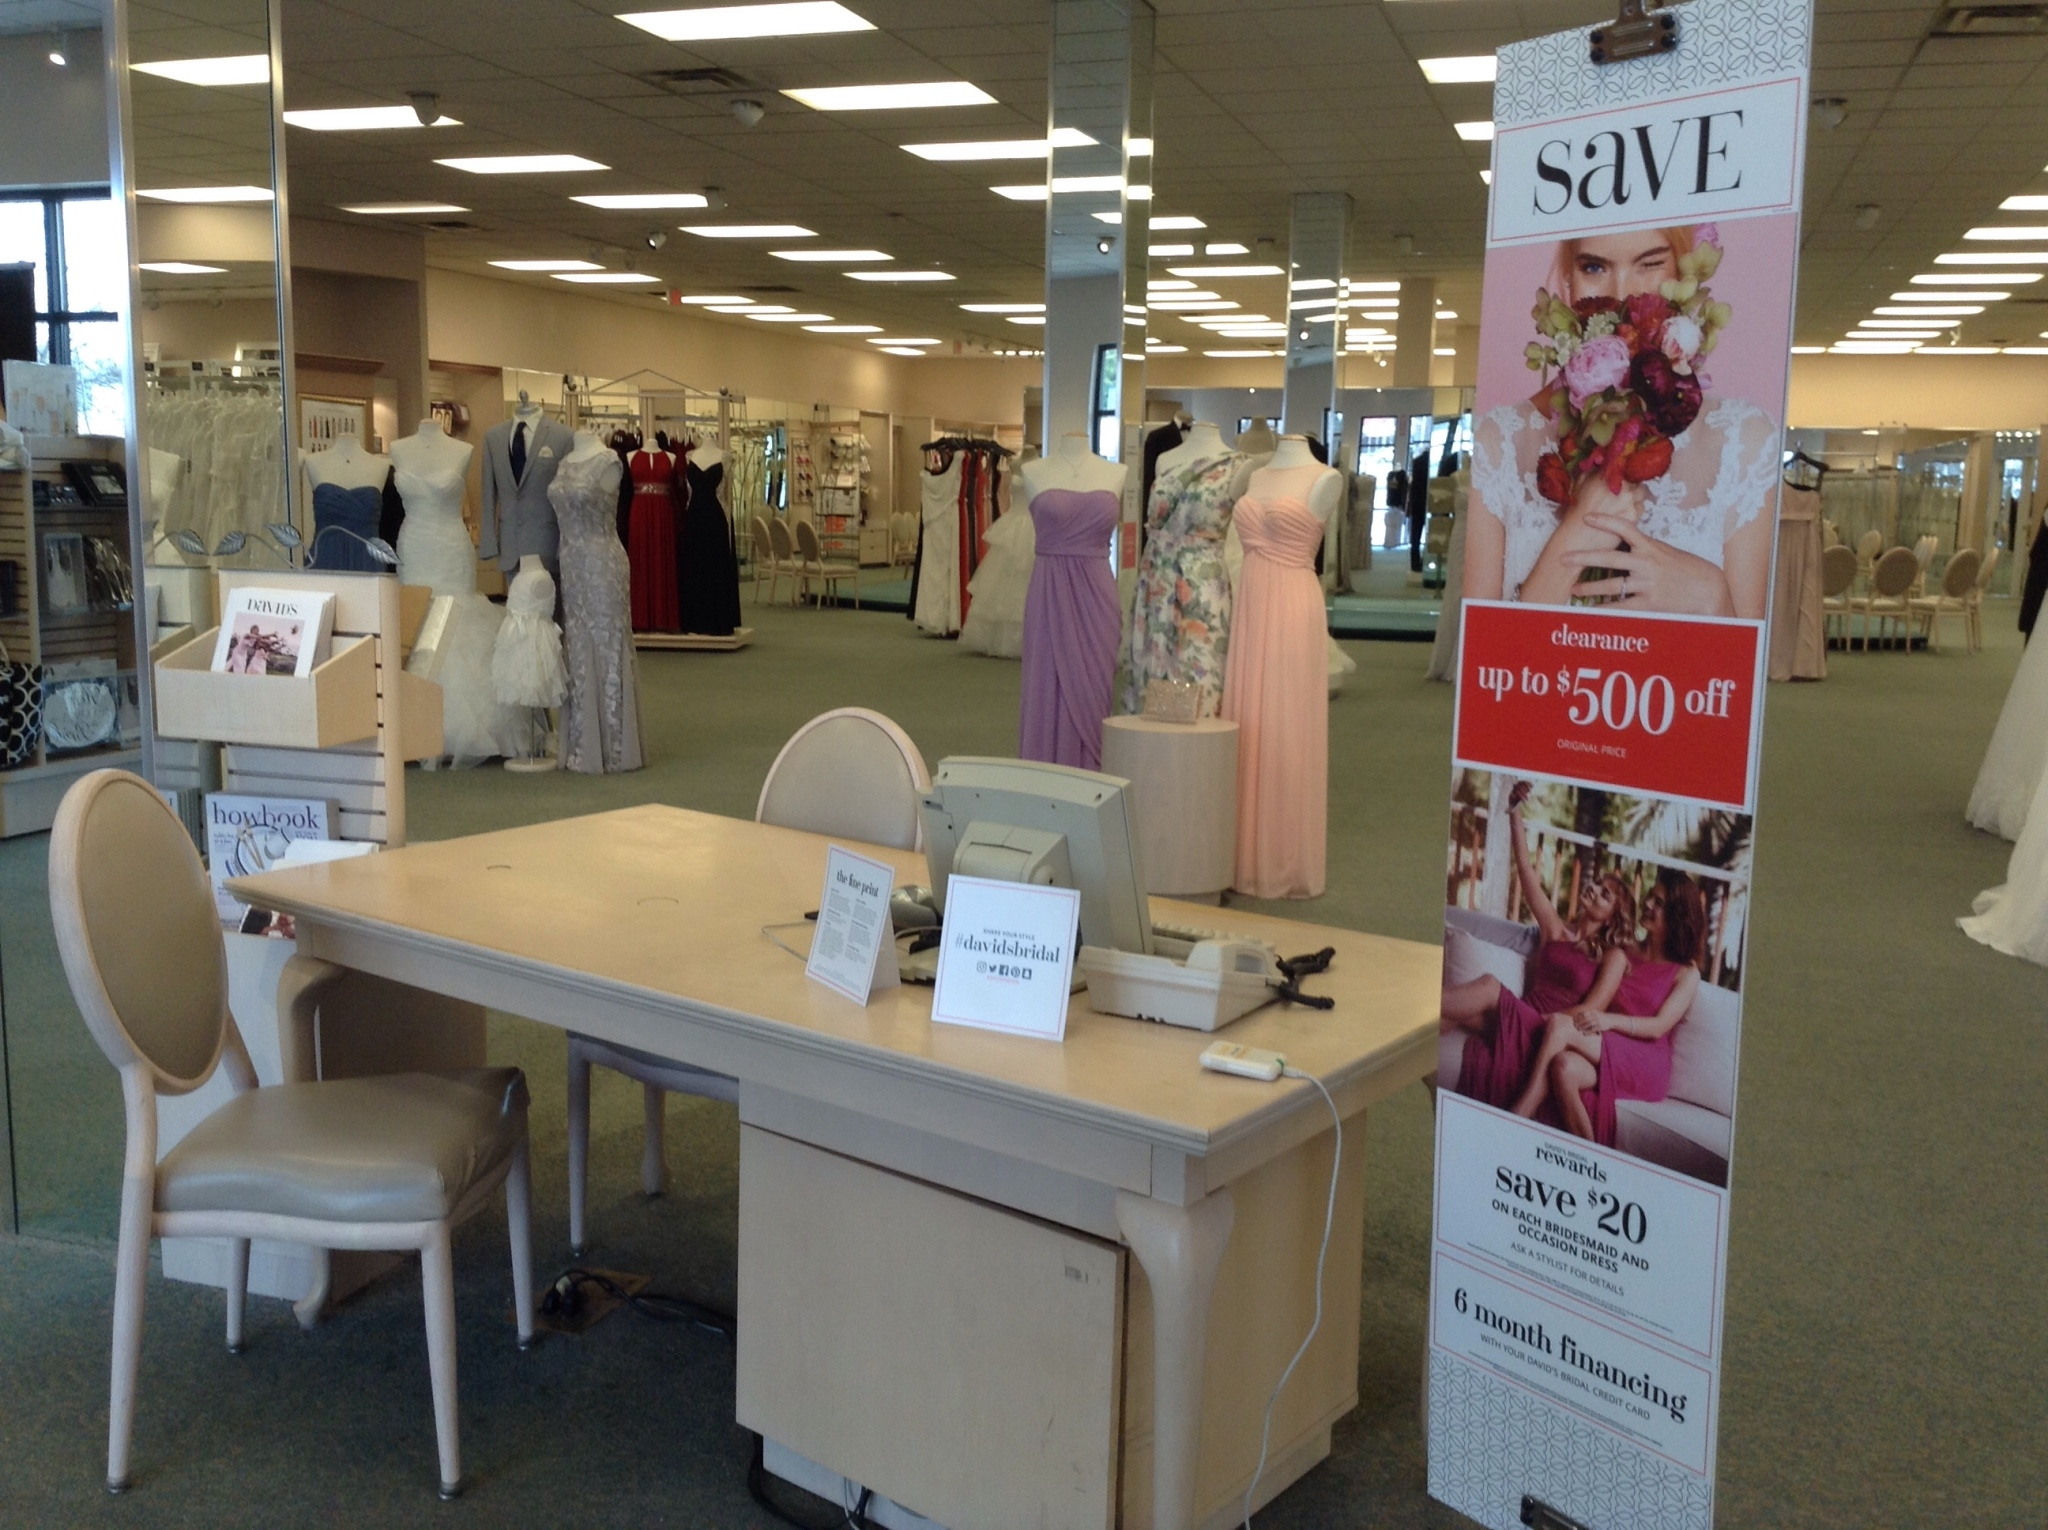 David S Bridal Bridal Shop St Peters Mo 63376